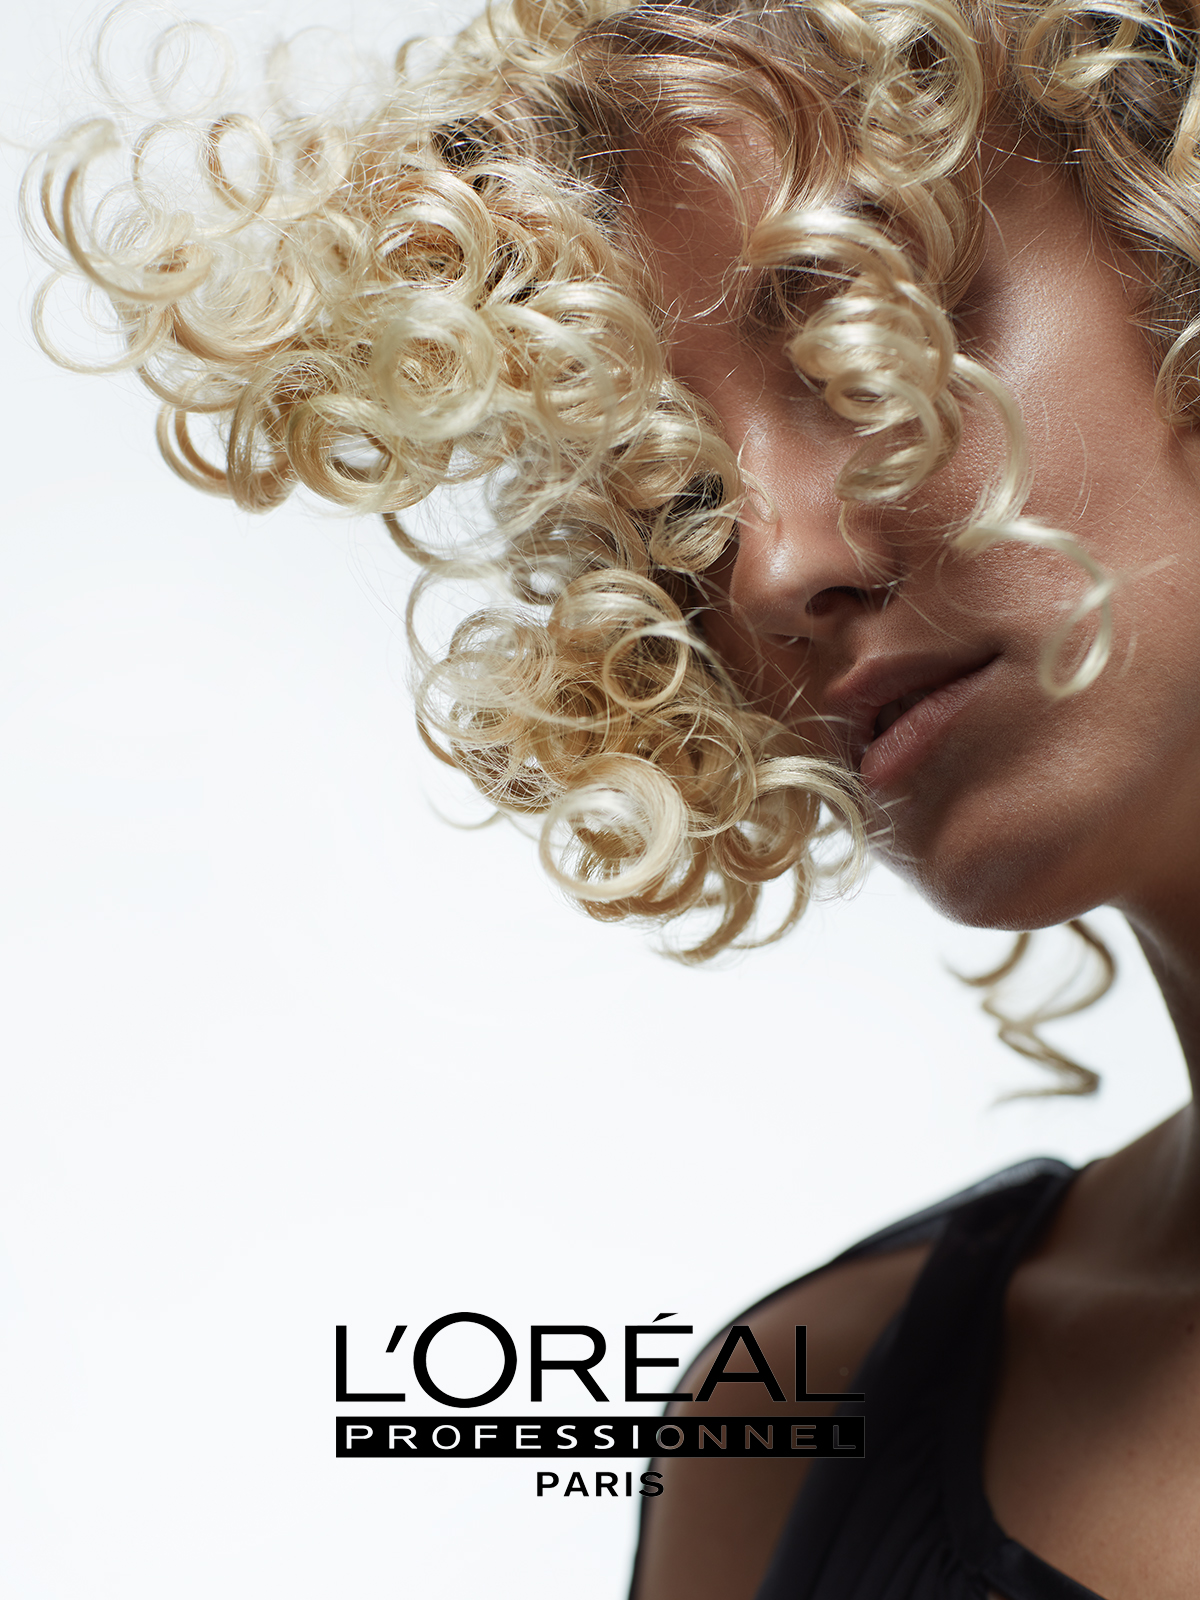 Loreal lookbook 2018 8.jpg